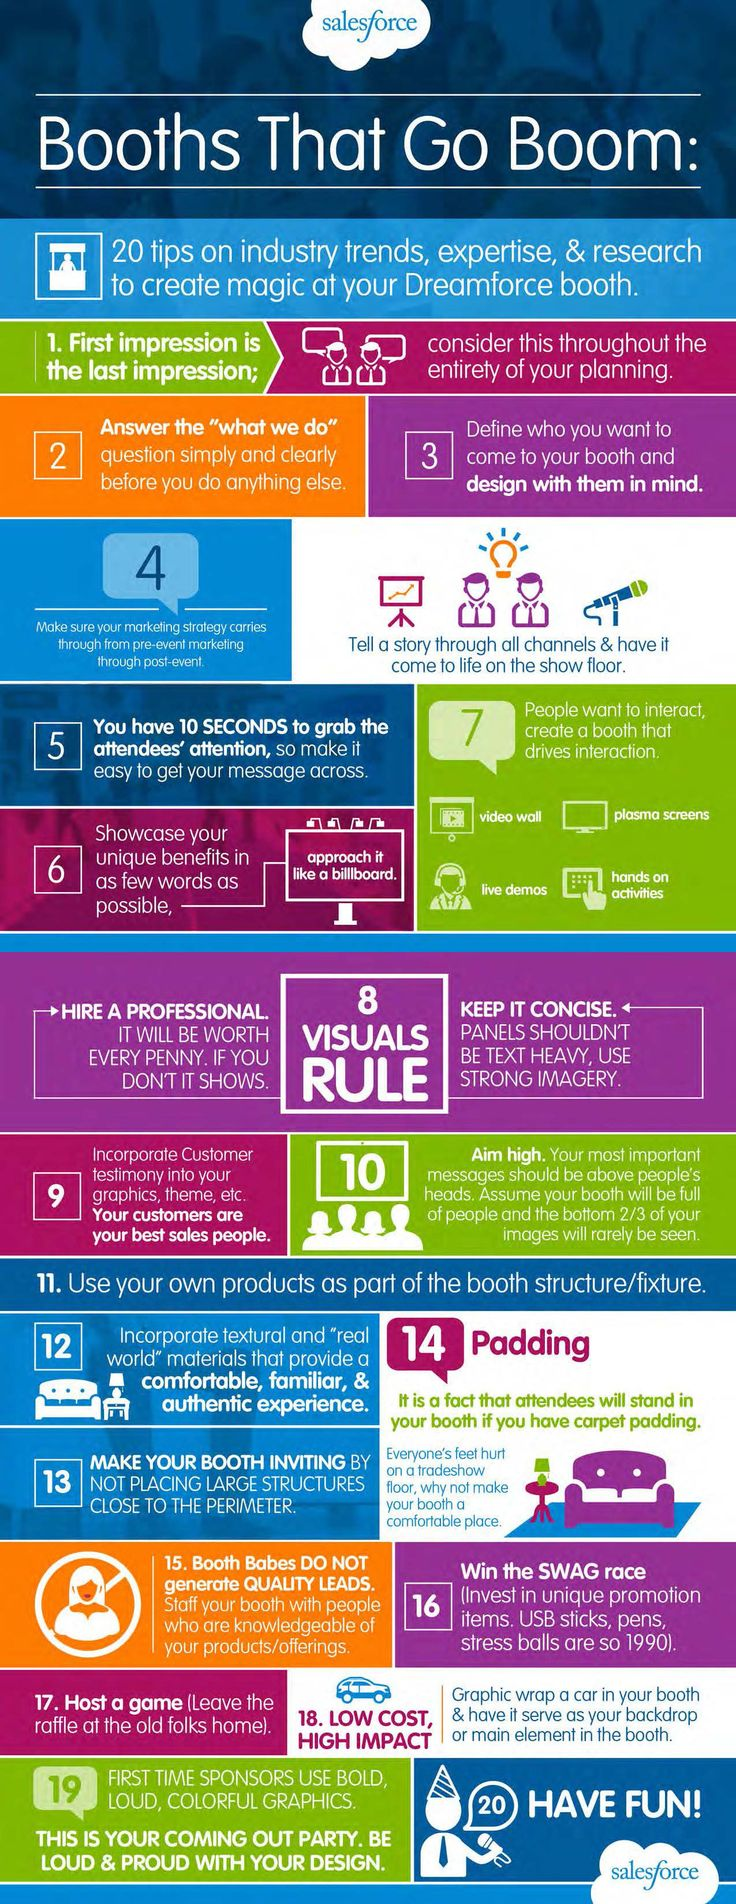 Booths-That-Go-Boom-Infographic_FINAL_lenqza